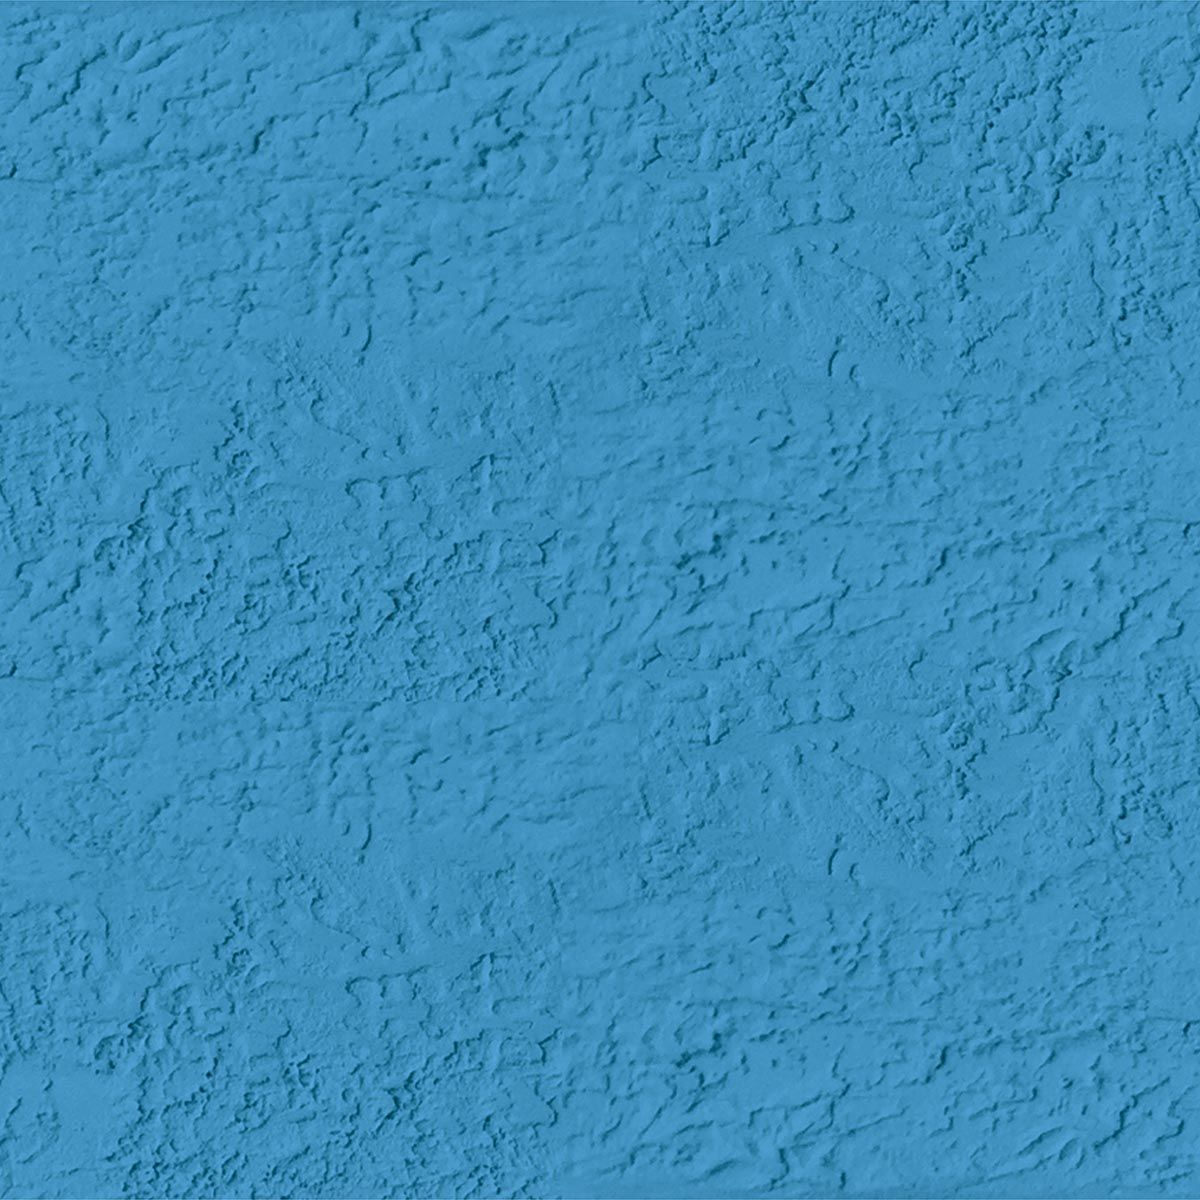 FolkArt ® Coastal™ Texture Paint - Largo Blue, 8 oz. - 6515